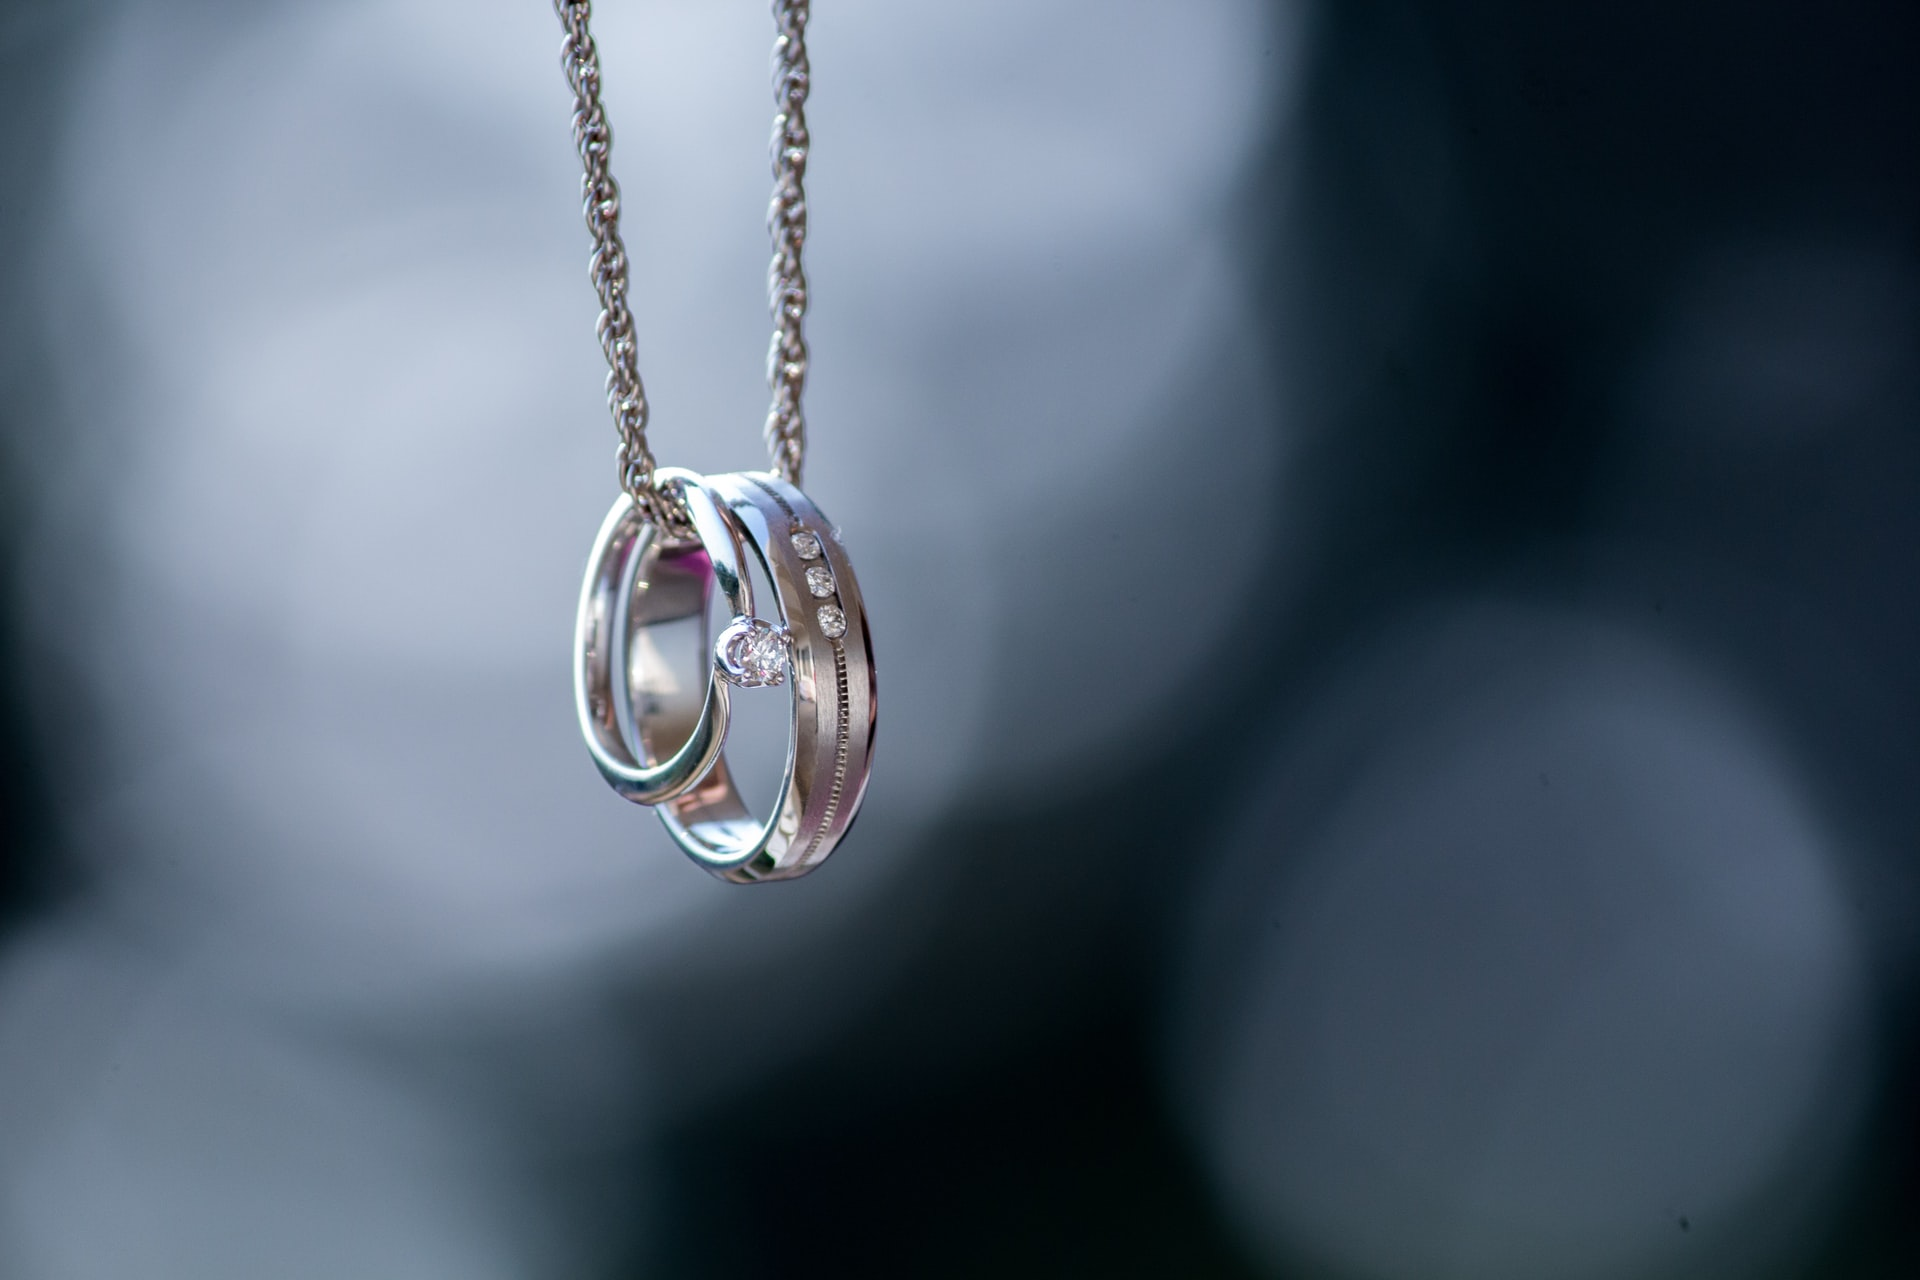 Rings hanging on a necklace